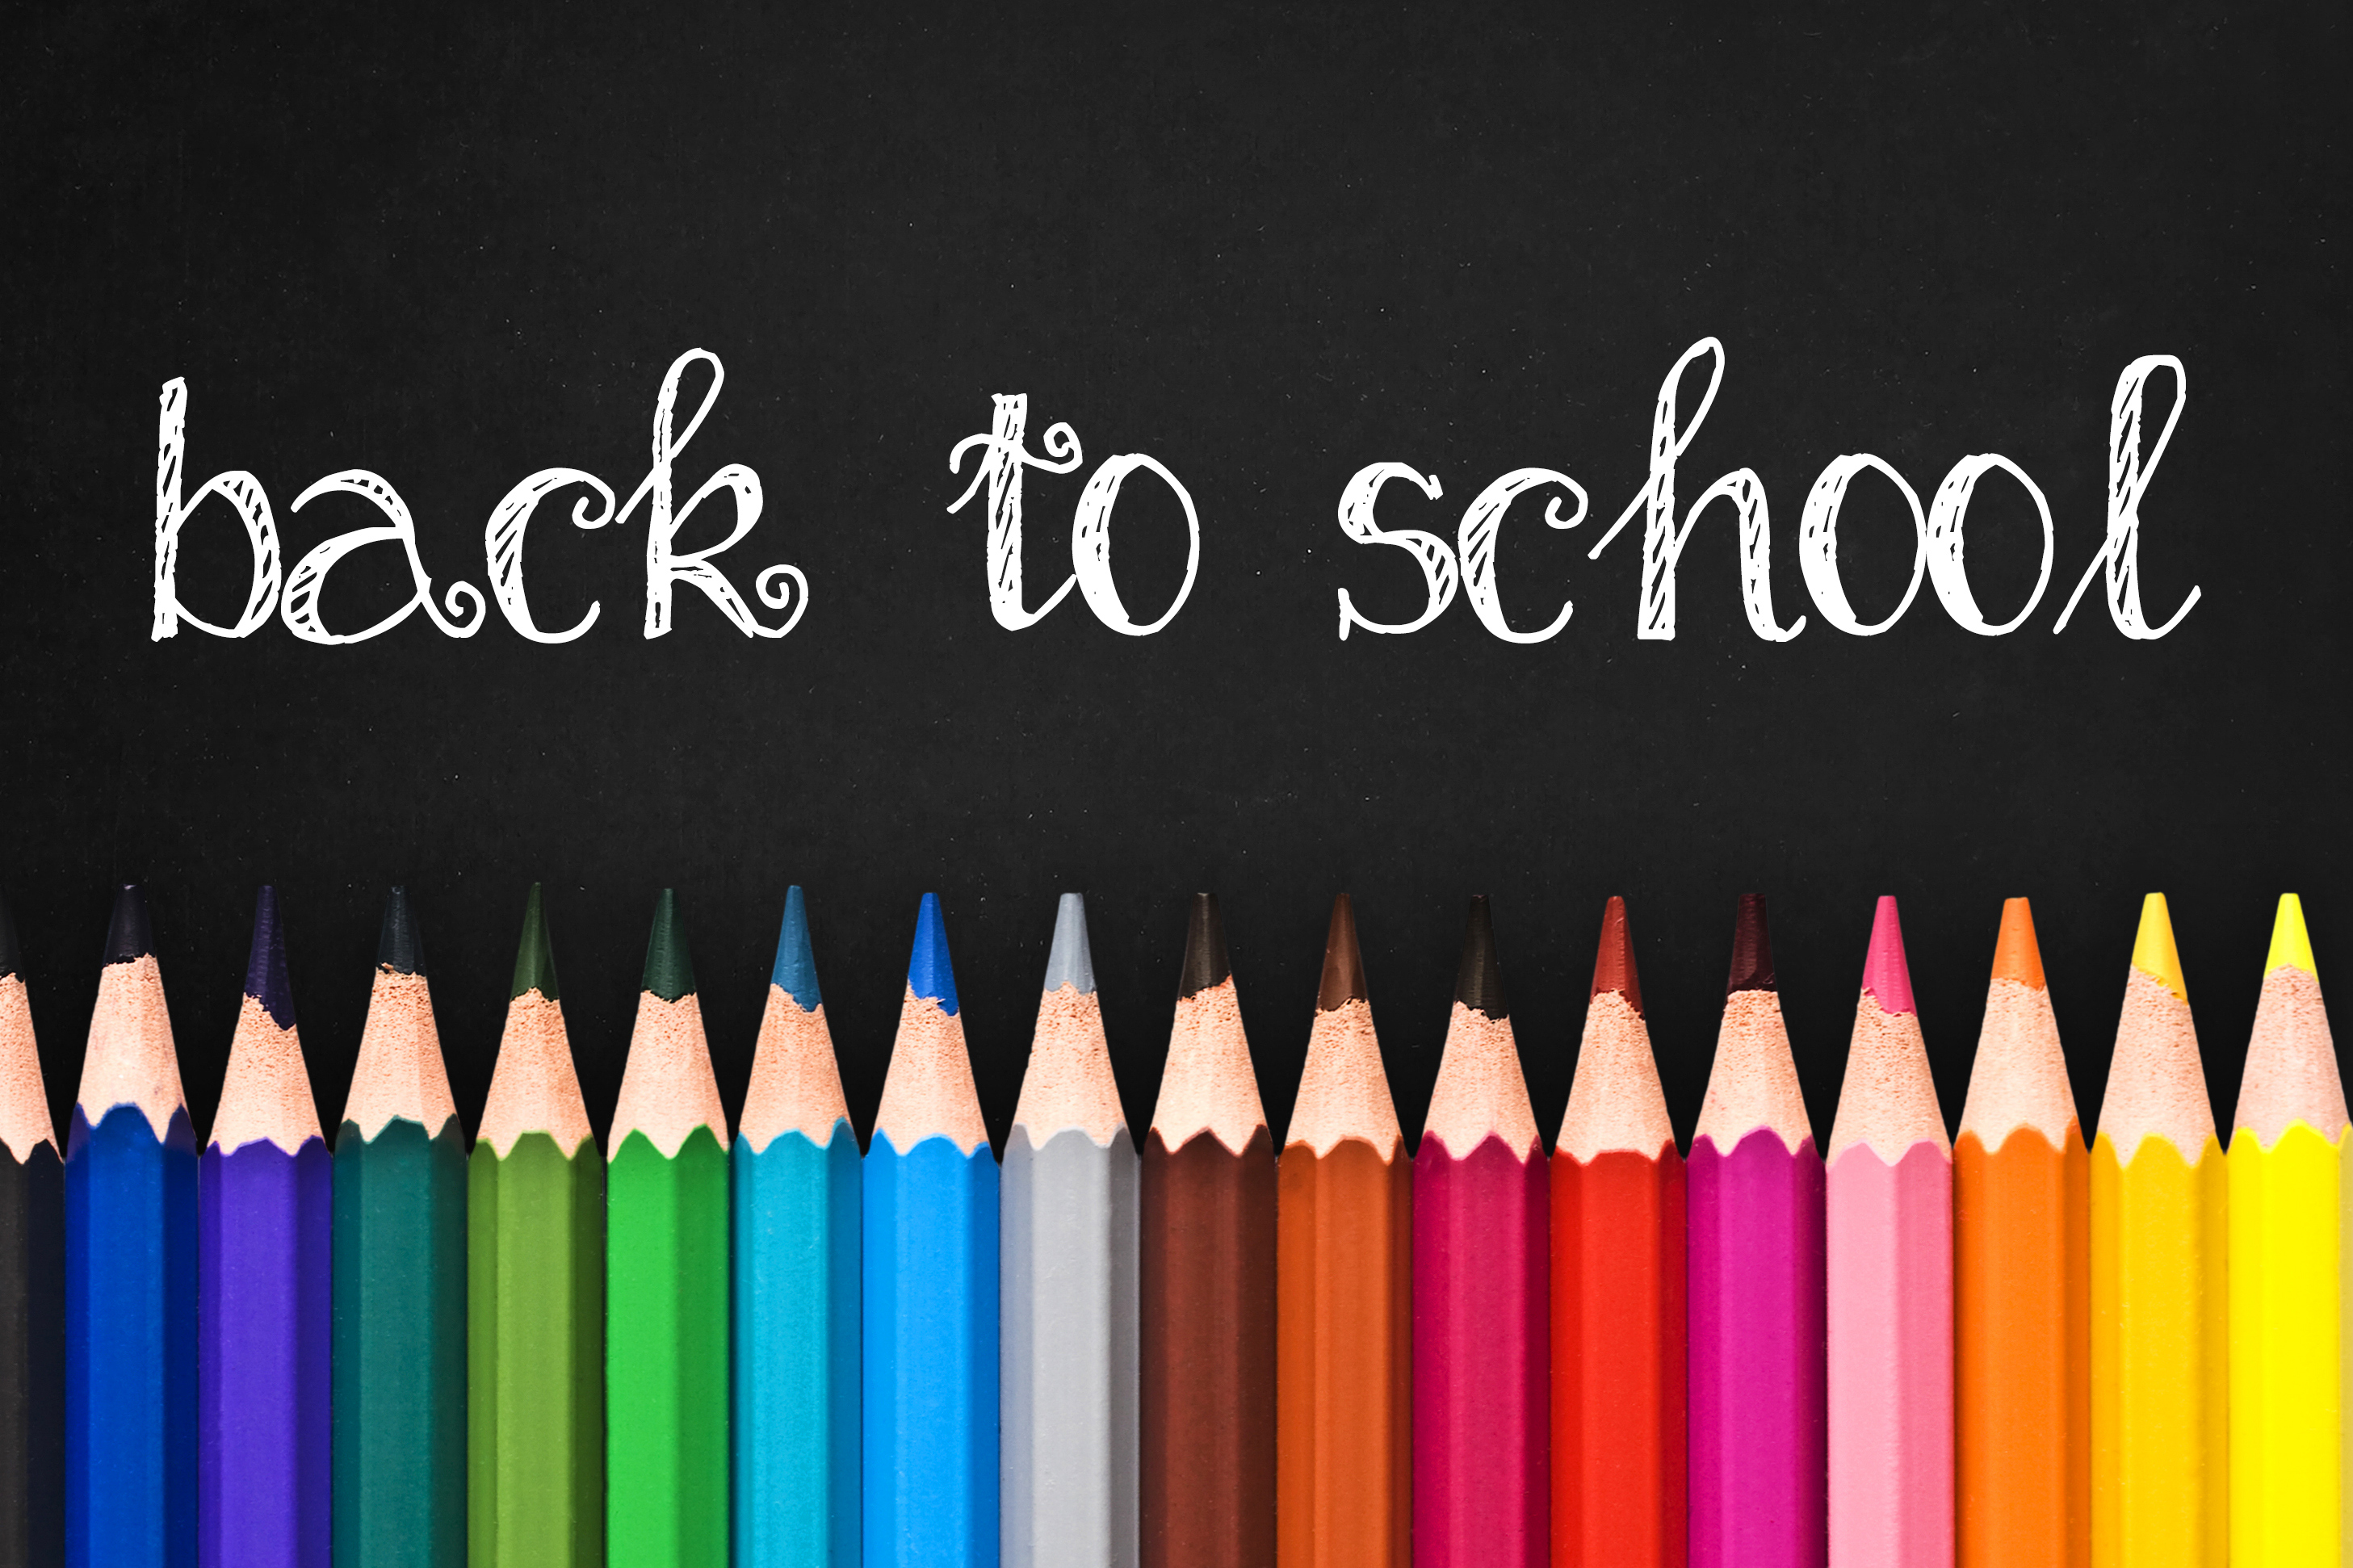 Back to school written on black chalkboard background with colorful wooden pencils